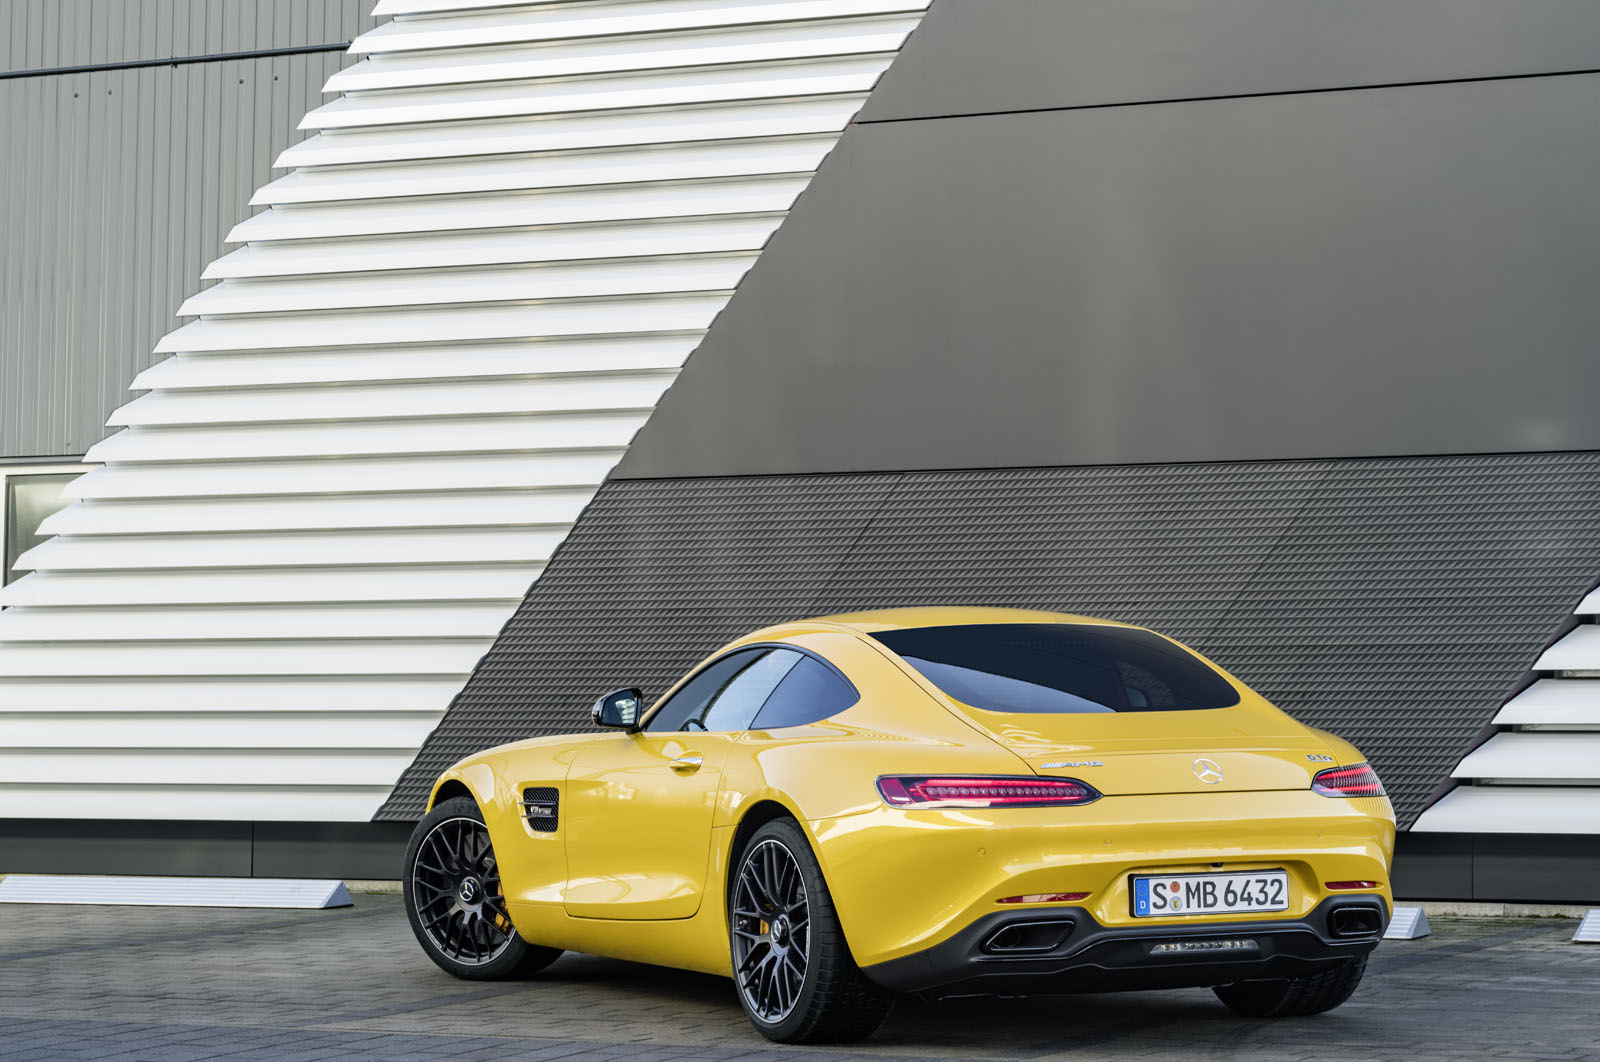 2014 - [Mercedes-AMG] GT [C190] - Page 29 16C1133_25